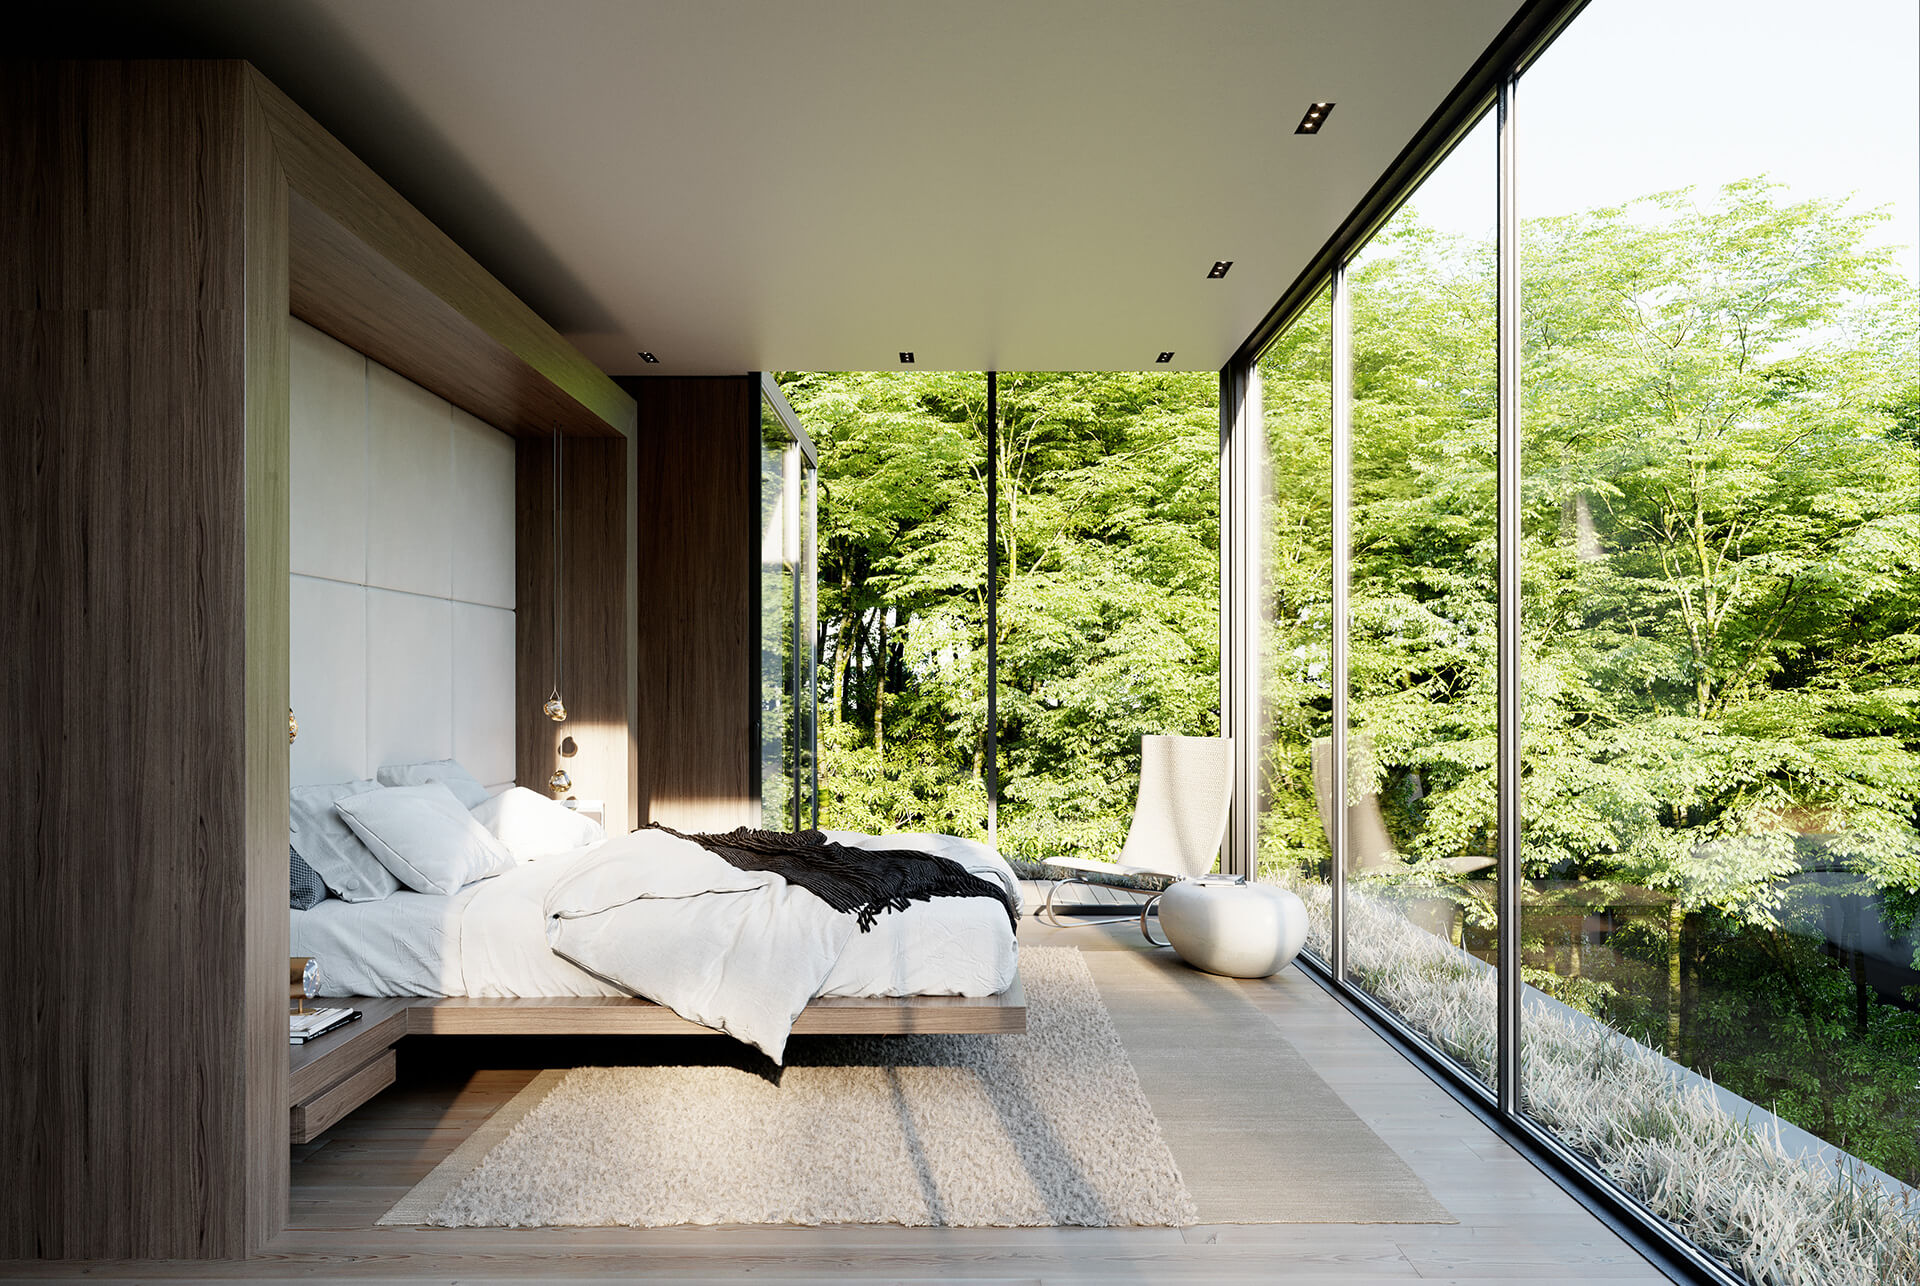 The master bedroom area | Crestwood Residence by Ancerl Studio | STIRworld